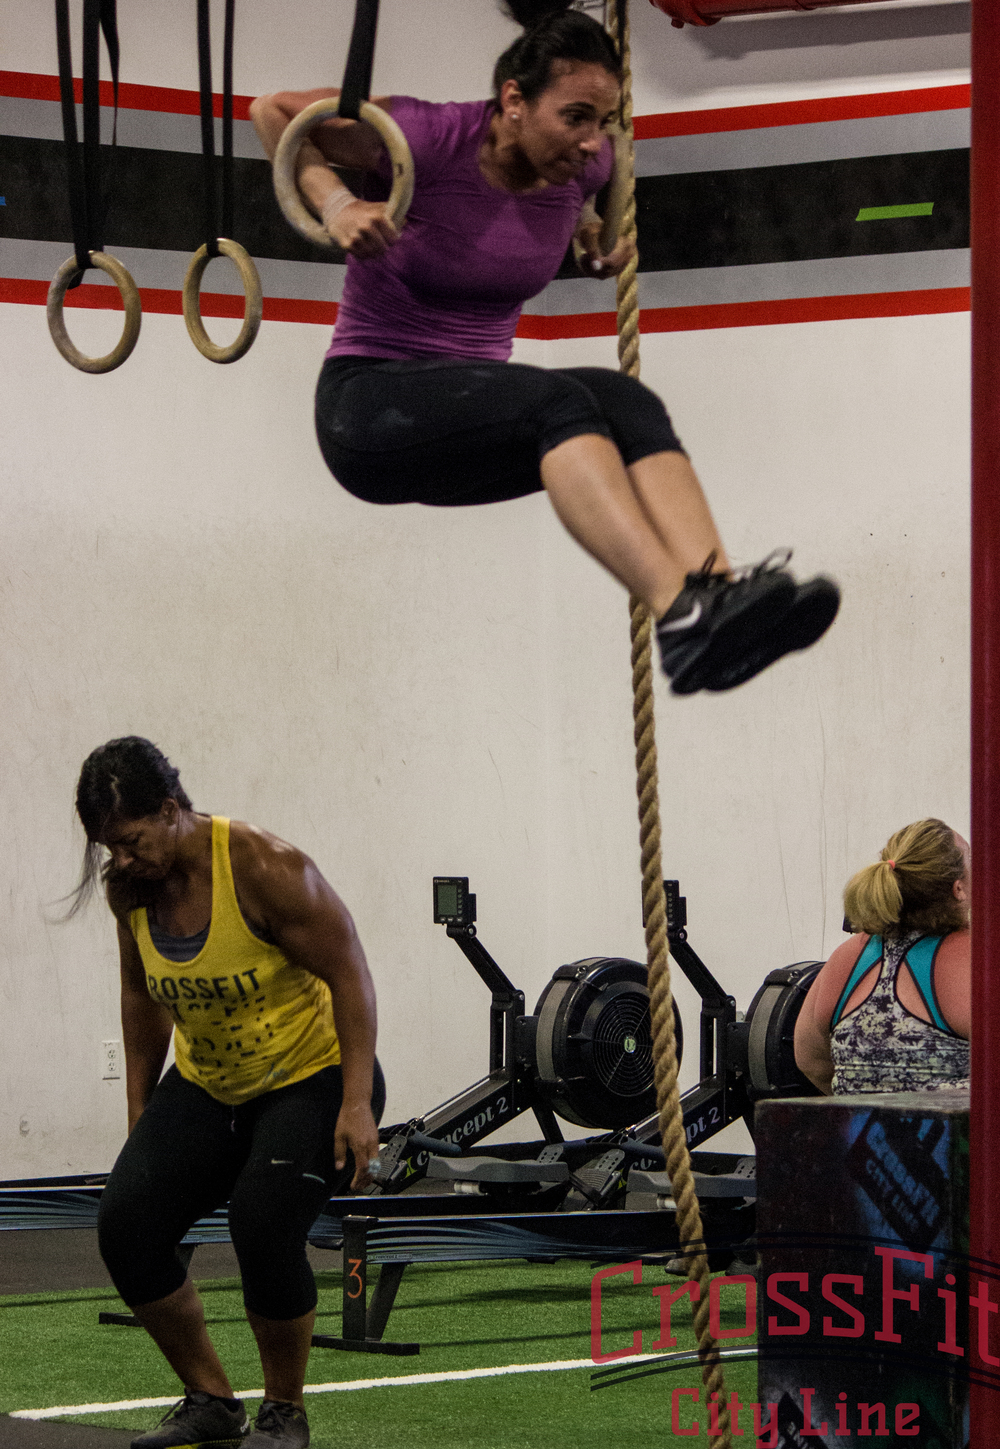 Gabby and amy rep out muscle ups